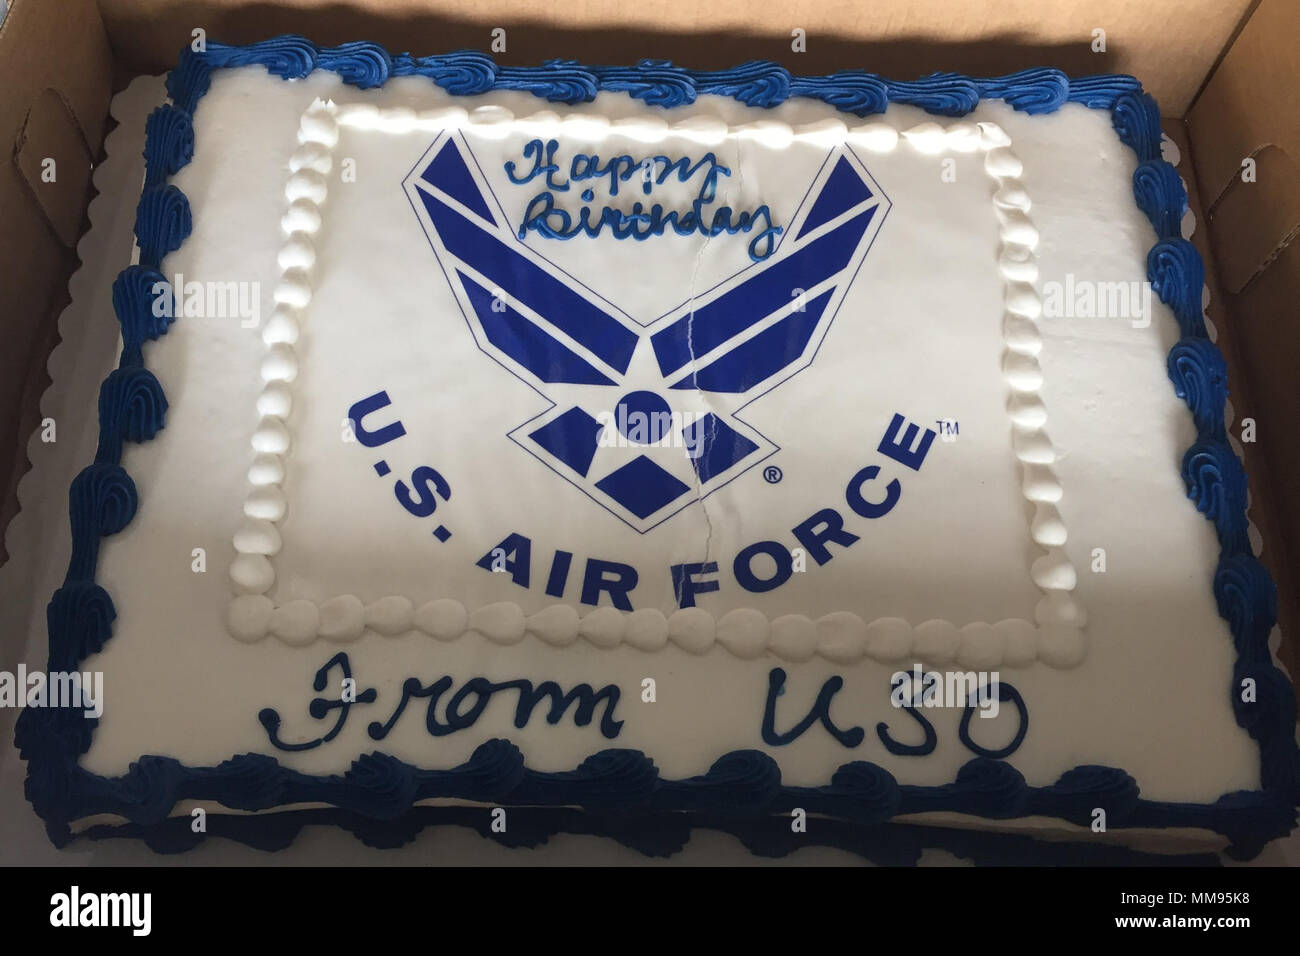 Joint Base San Antonio Texas A Close Up Of A Cake Decorated To